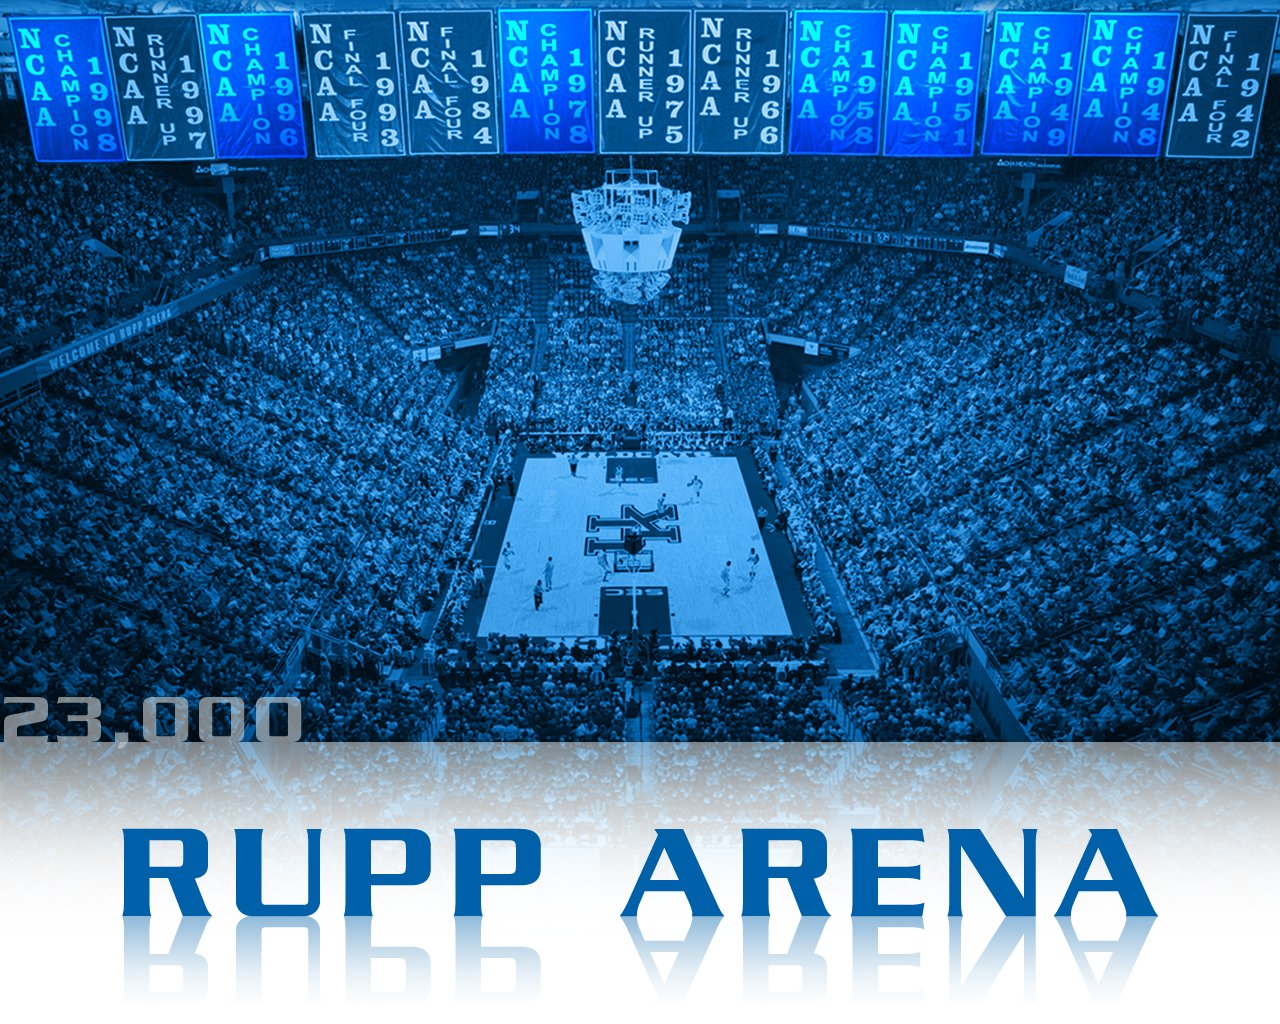 Kentucky Wildcats Basketball Wallpapers The Art Mad Wallpapers 1280x1024